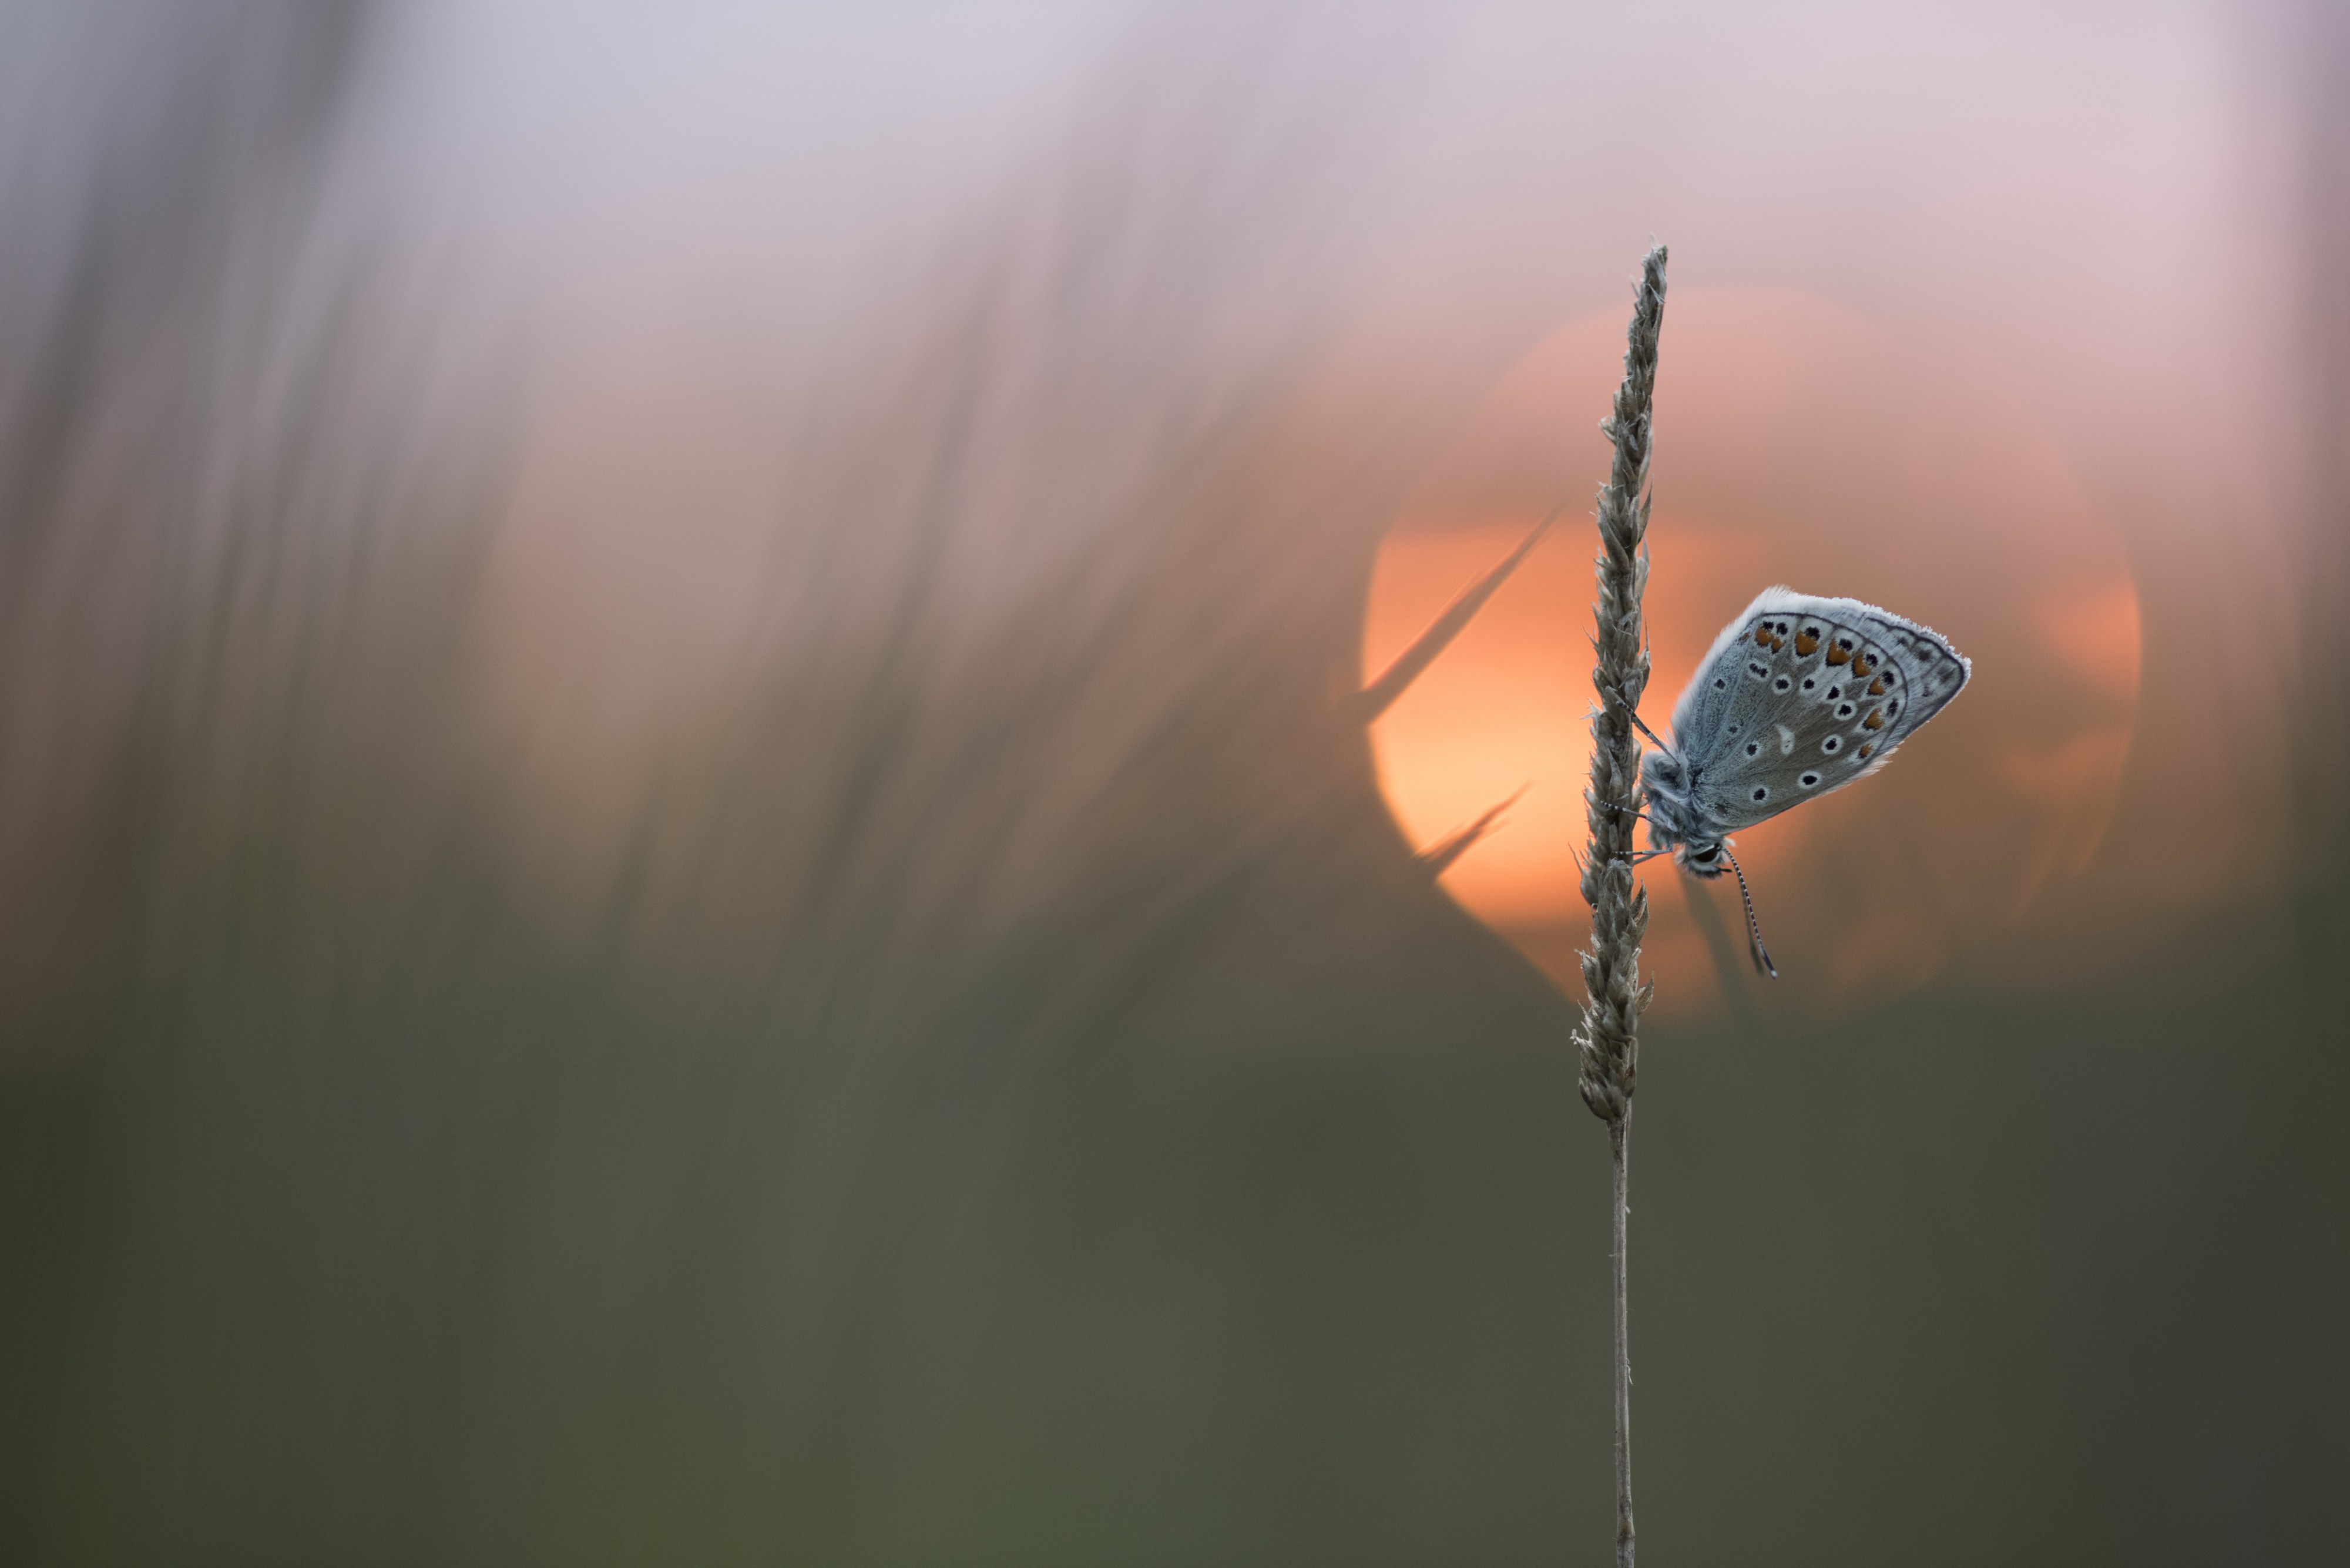 A butterfly perches on a clearly-focused piece of grass, with a glowing orange sunset framed perfectly behind her